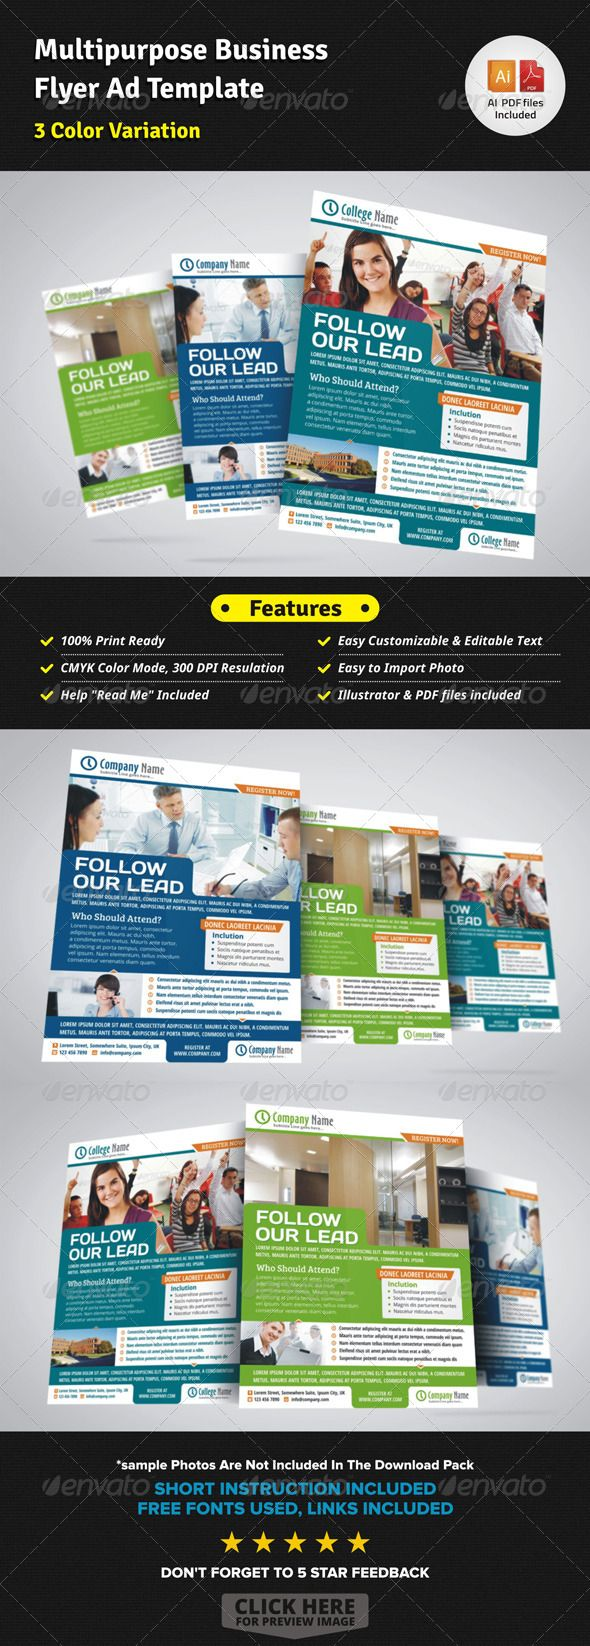 best ideas about print templates fonts flyer multipurpose business flyer ad template graphicriver corporate business flyer template creative clean and